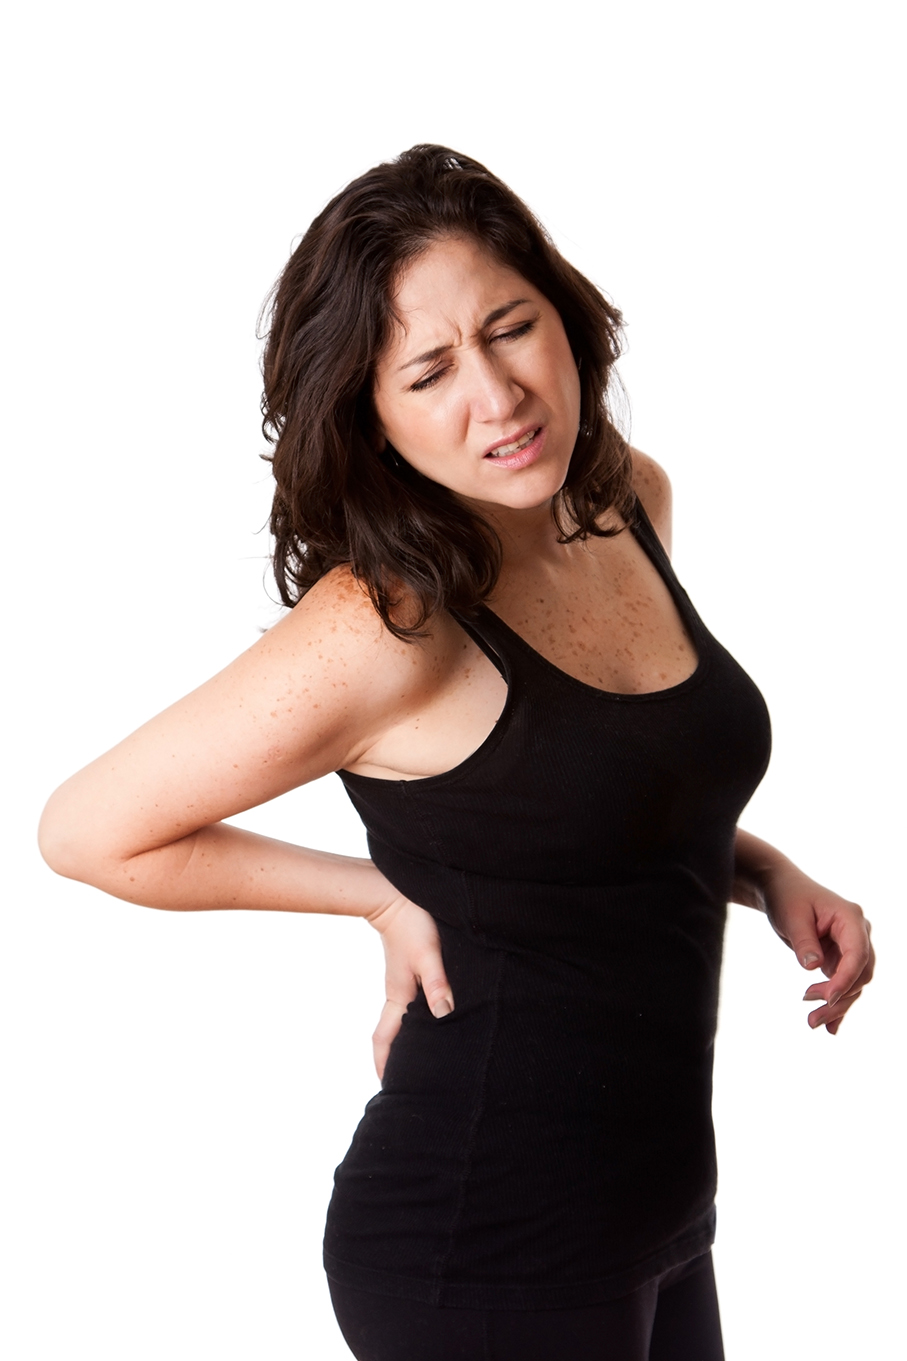 Beautiful woman holding her back with pain and ache due to injury,wearing a sporty black tank top, isolated.